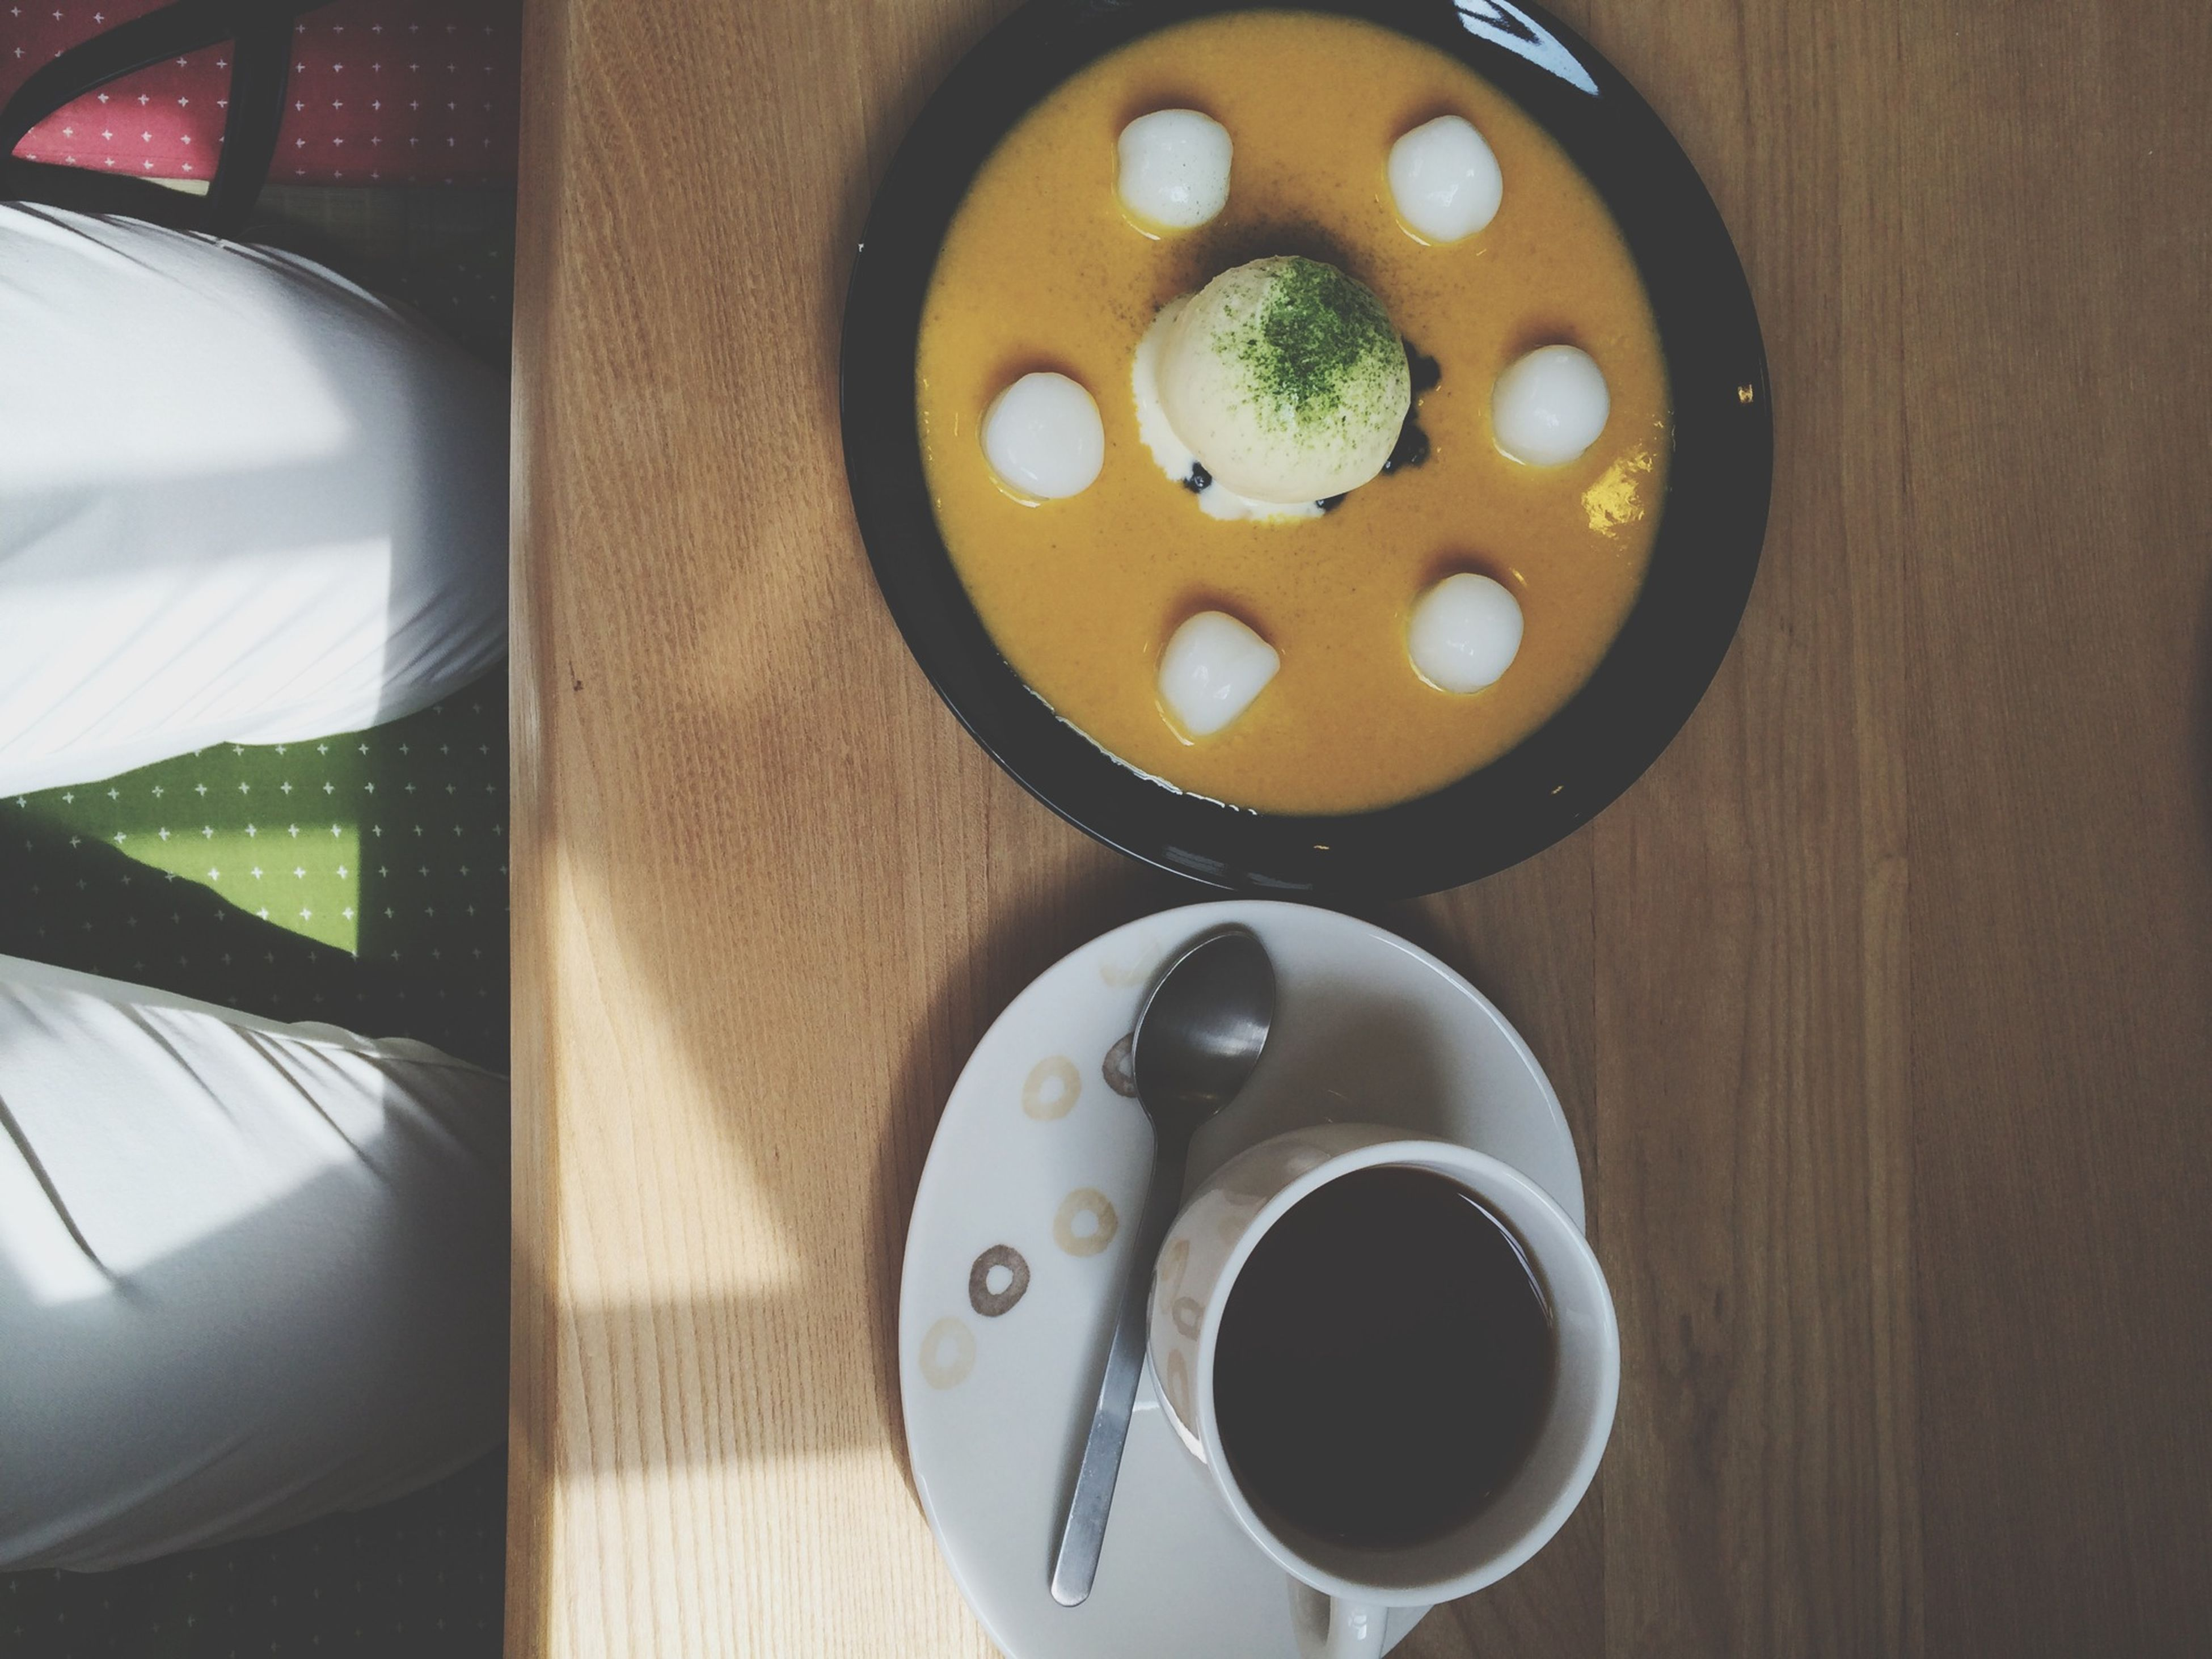 indoors, food and drink, table, high angle view, still life, directly above, plate, food, drink, freshness, circle, spoon, coffee cup, healthy eating, no people, wood - material, close-up, bowl, refreshment, saucer